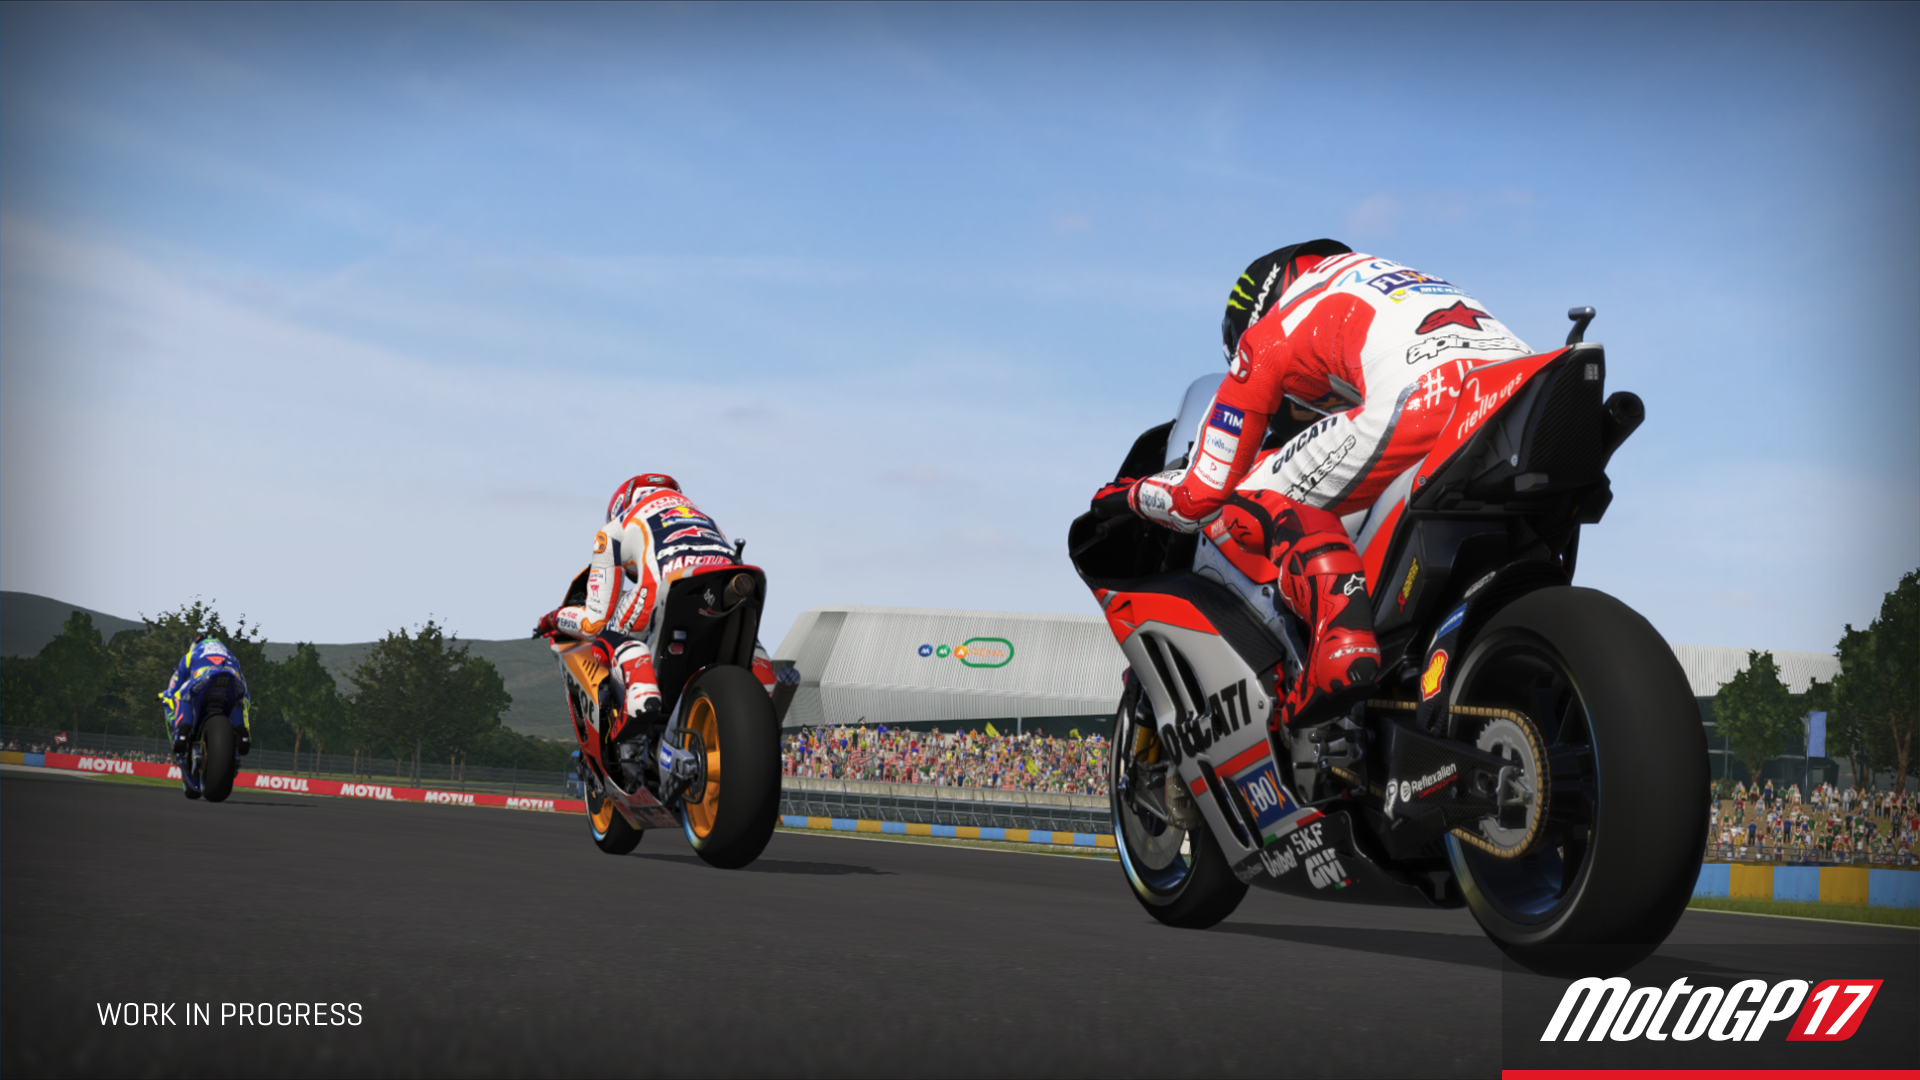 MotoGP 17 Reveals Brand New Managerial Career Mode and New Gameplay Footage